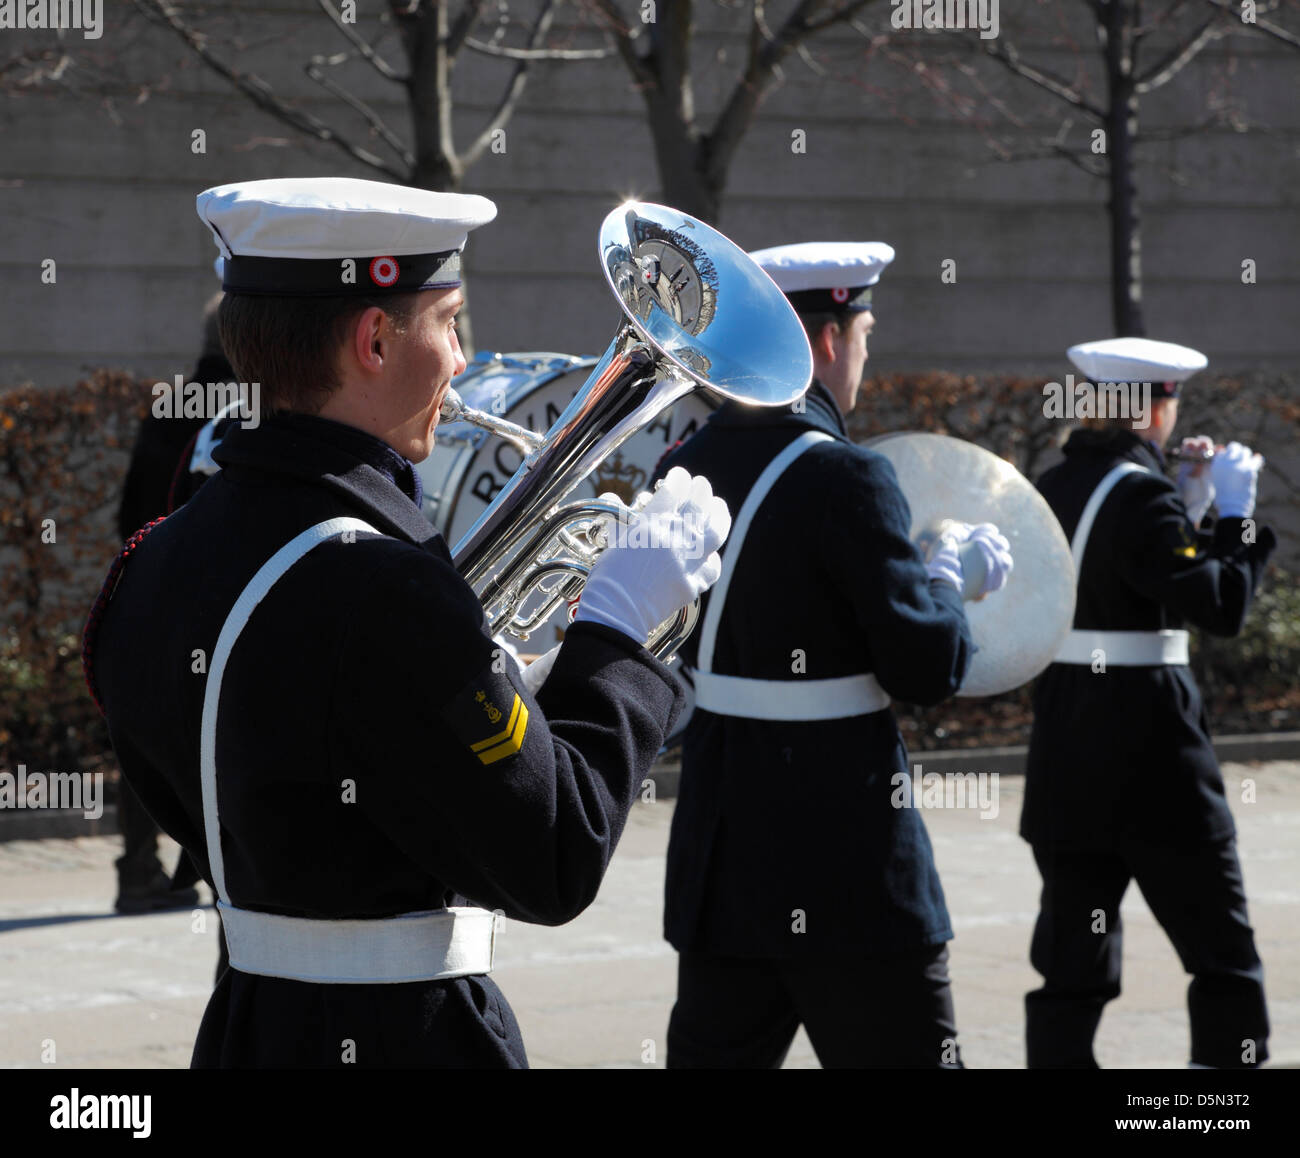 Copenhagen, Denmark. April 4th 2013. The playing and singing Royal Danish Navy Band accompanying the cadets from - Stock Image